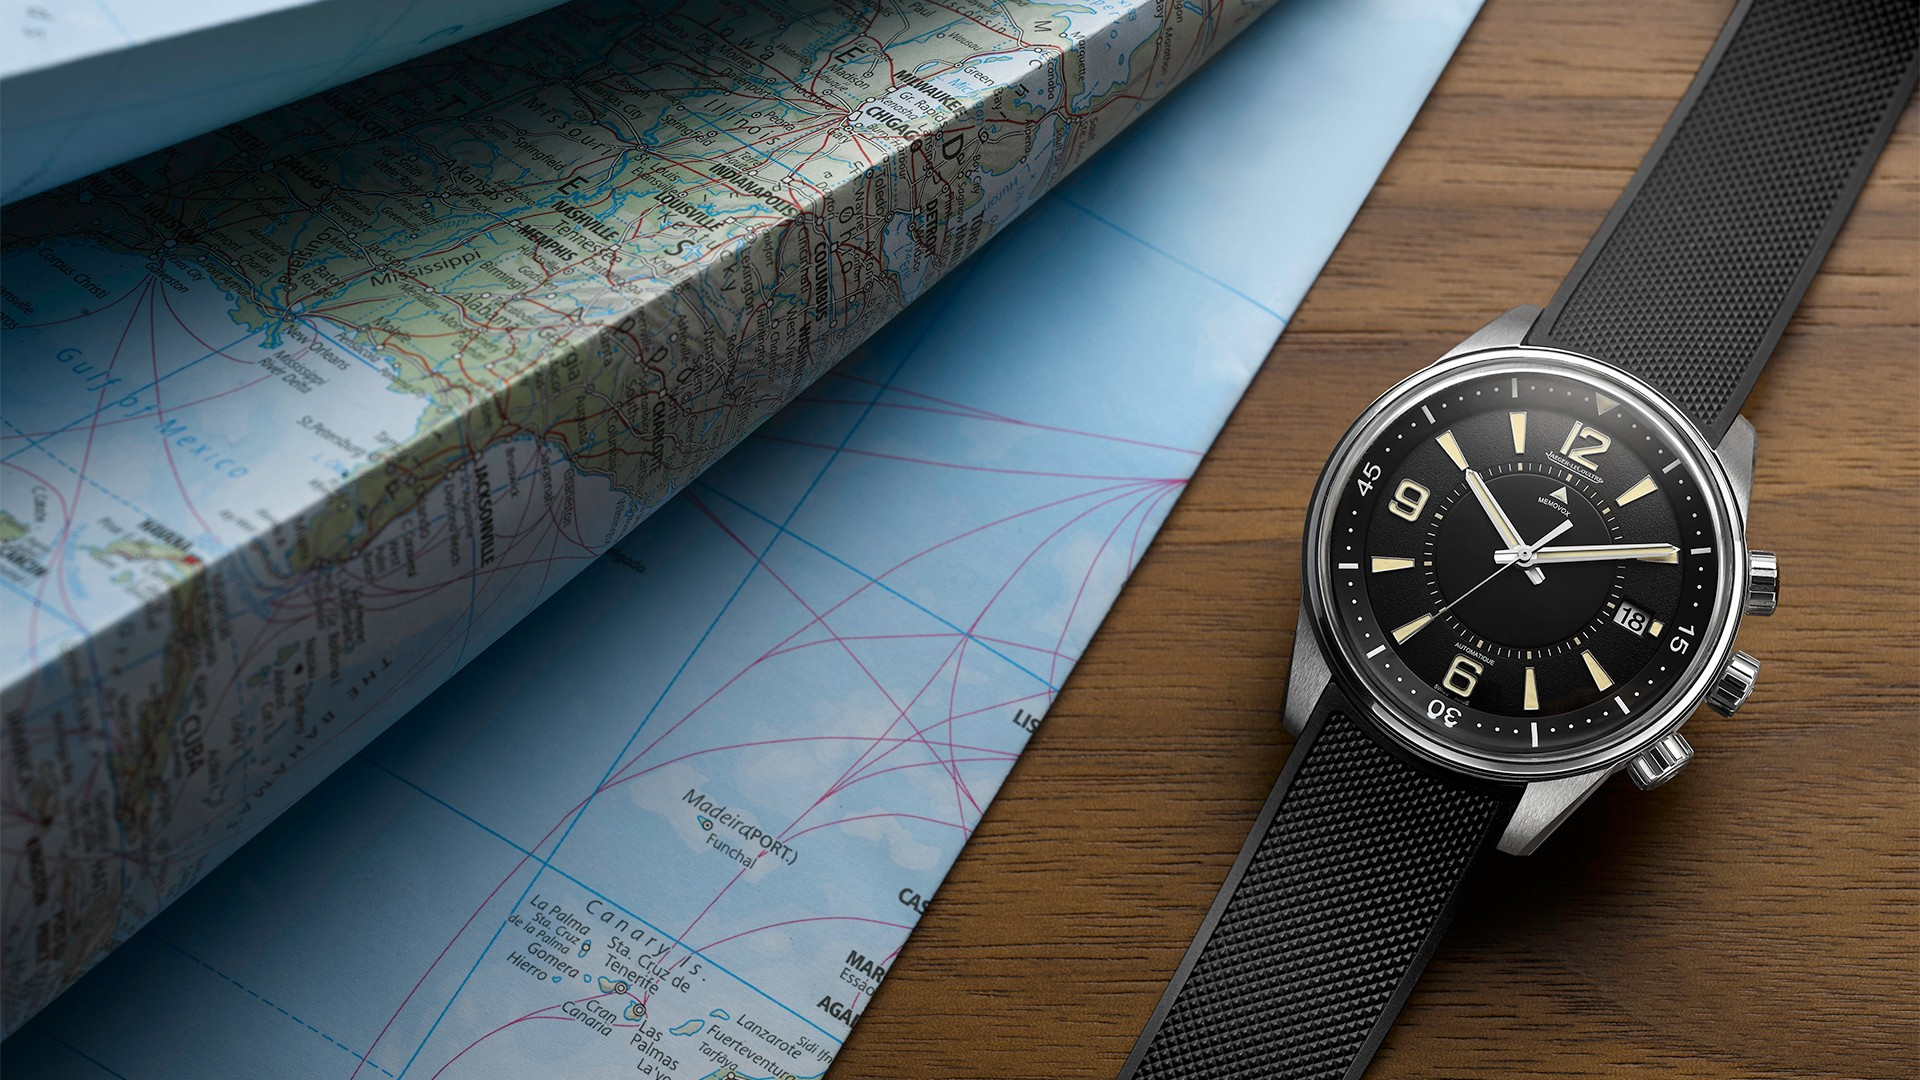 Jaeger-LeCoultre Polaris Memovox Limited Edition watch